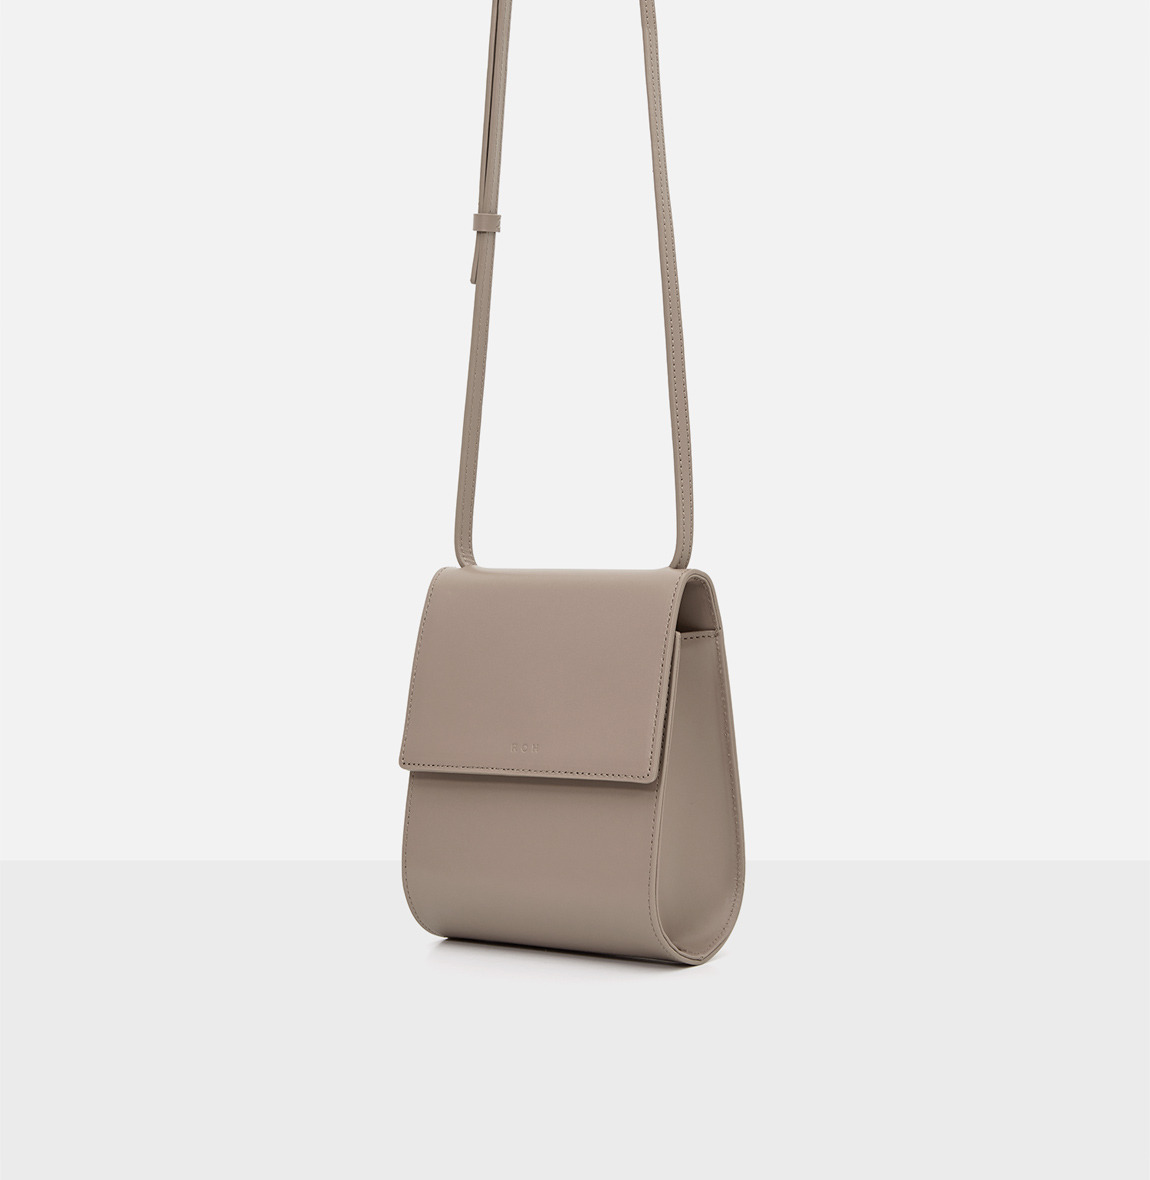 [Repurb]Pochette crossbody bag Beige